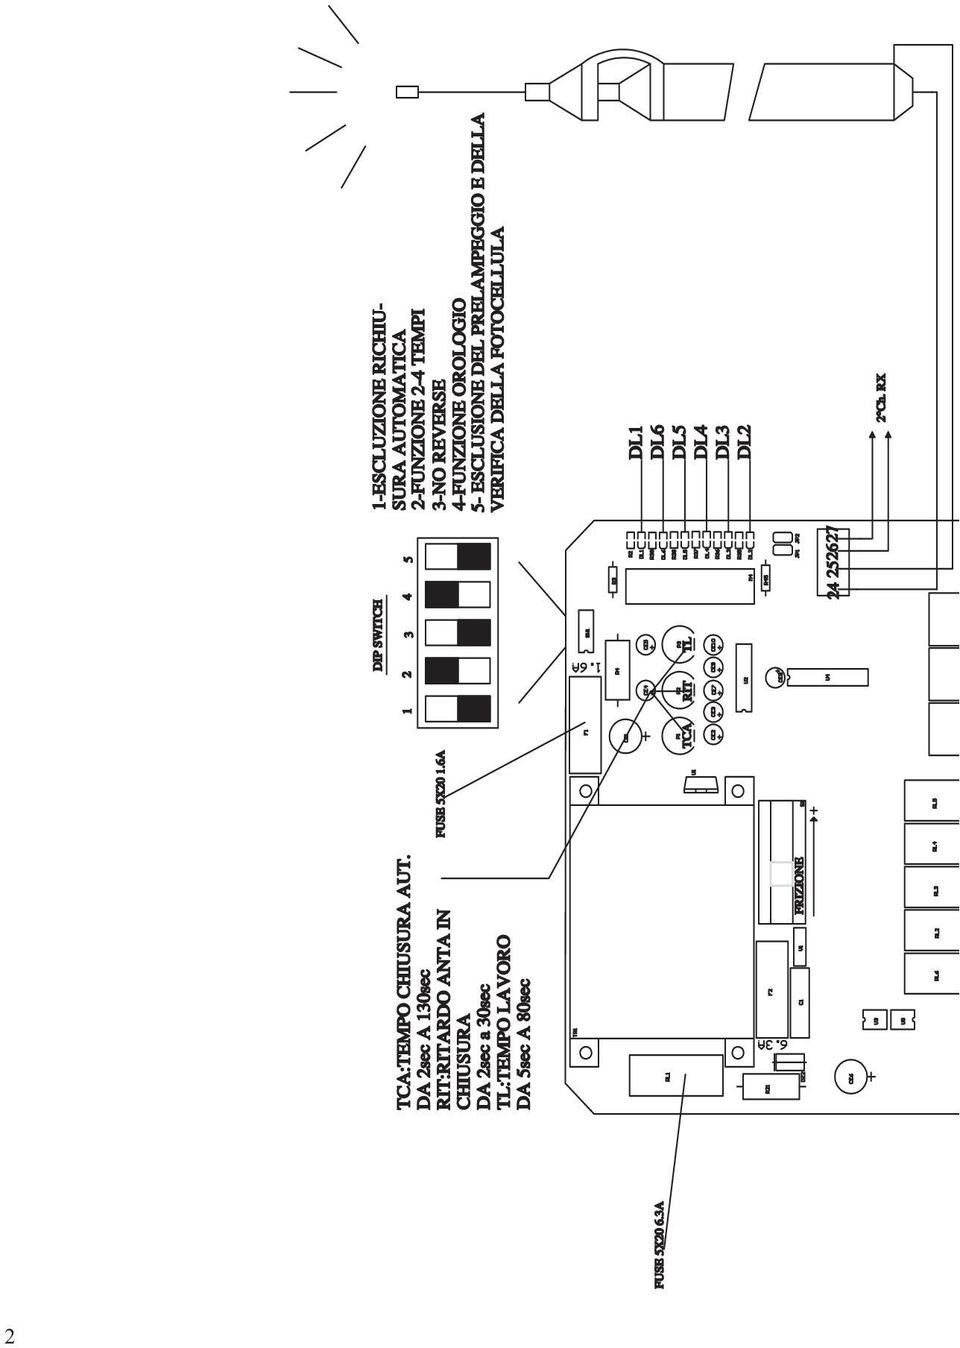 D755m Control Card For Two Single Phase Motors 220 230 Vac Tarjeta Siren Simulator Wiring Diagram Schematic And 2